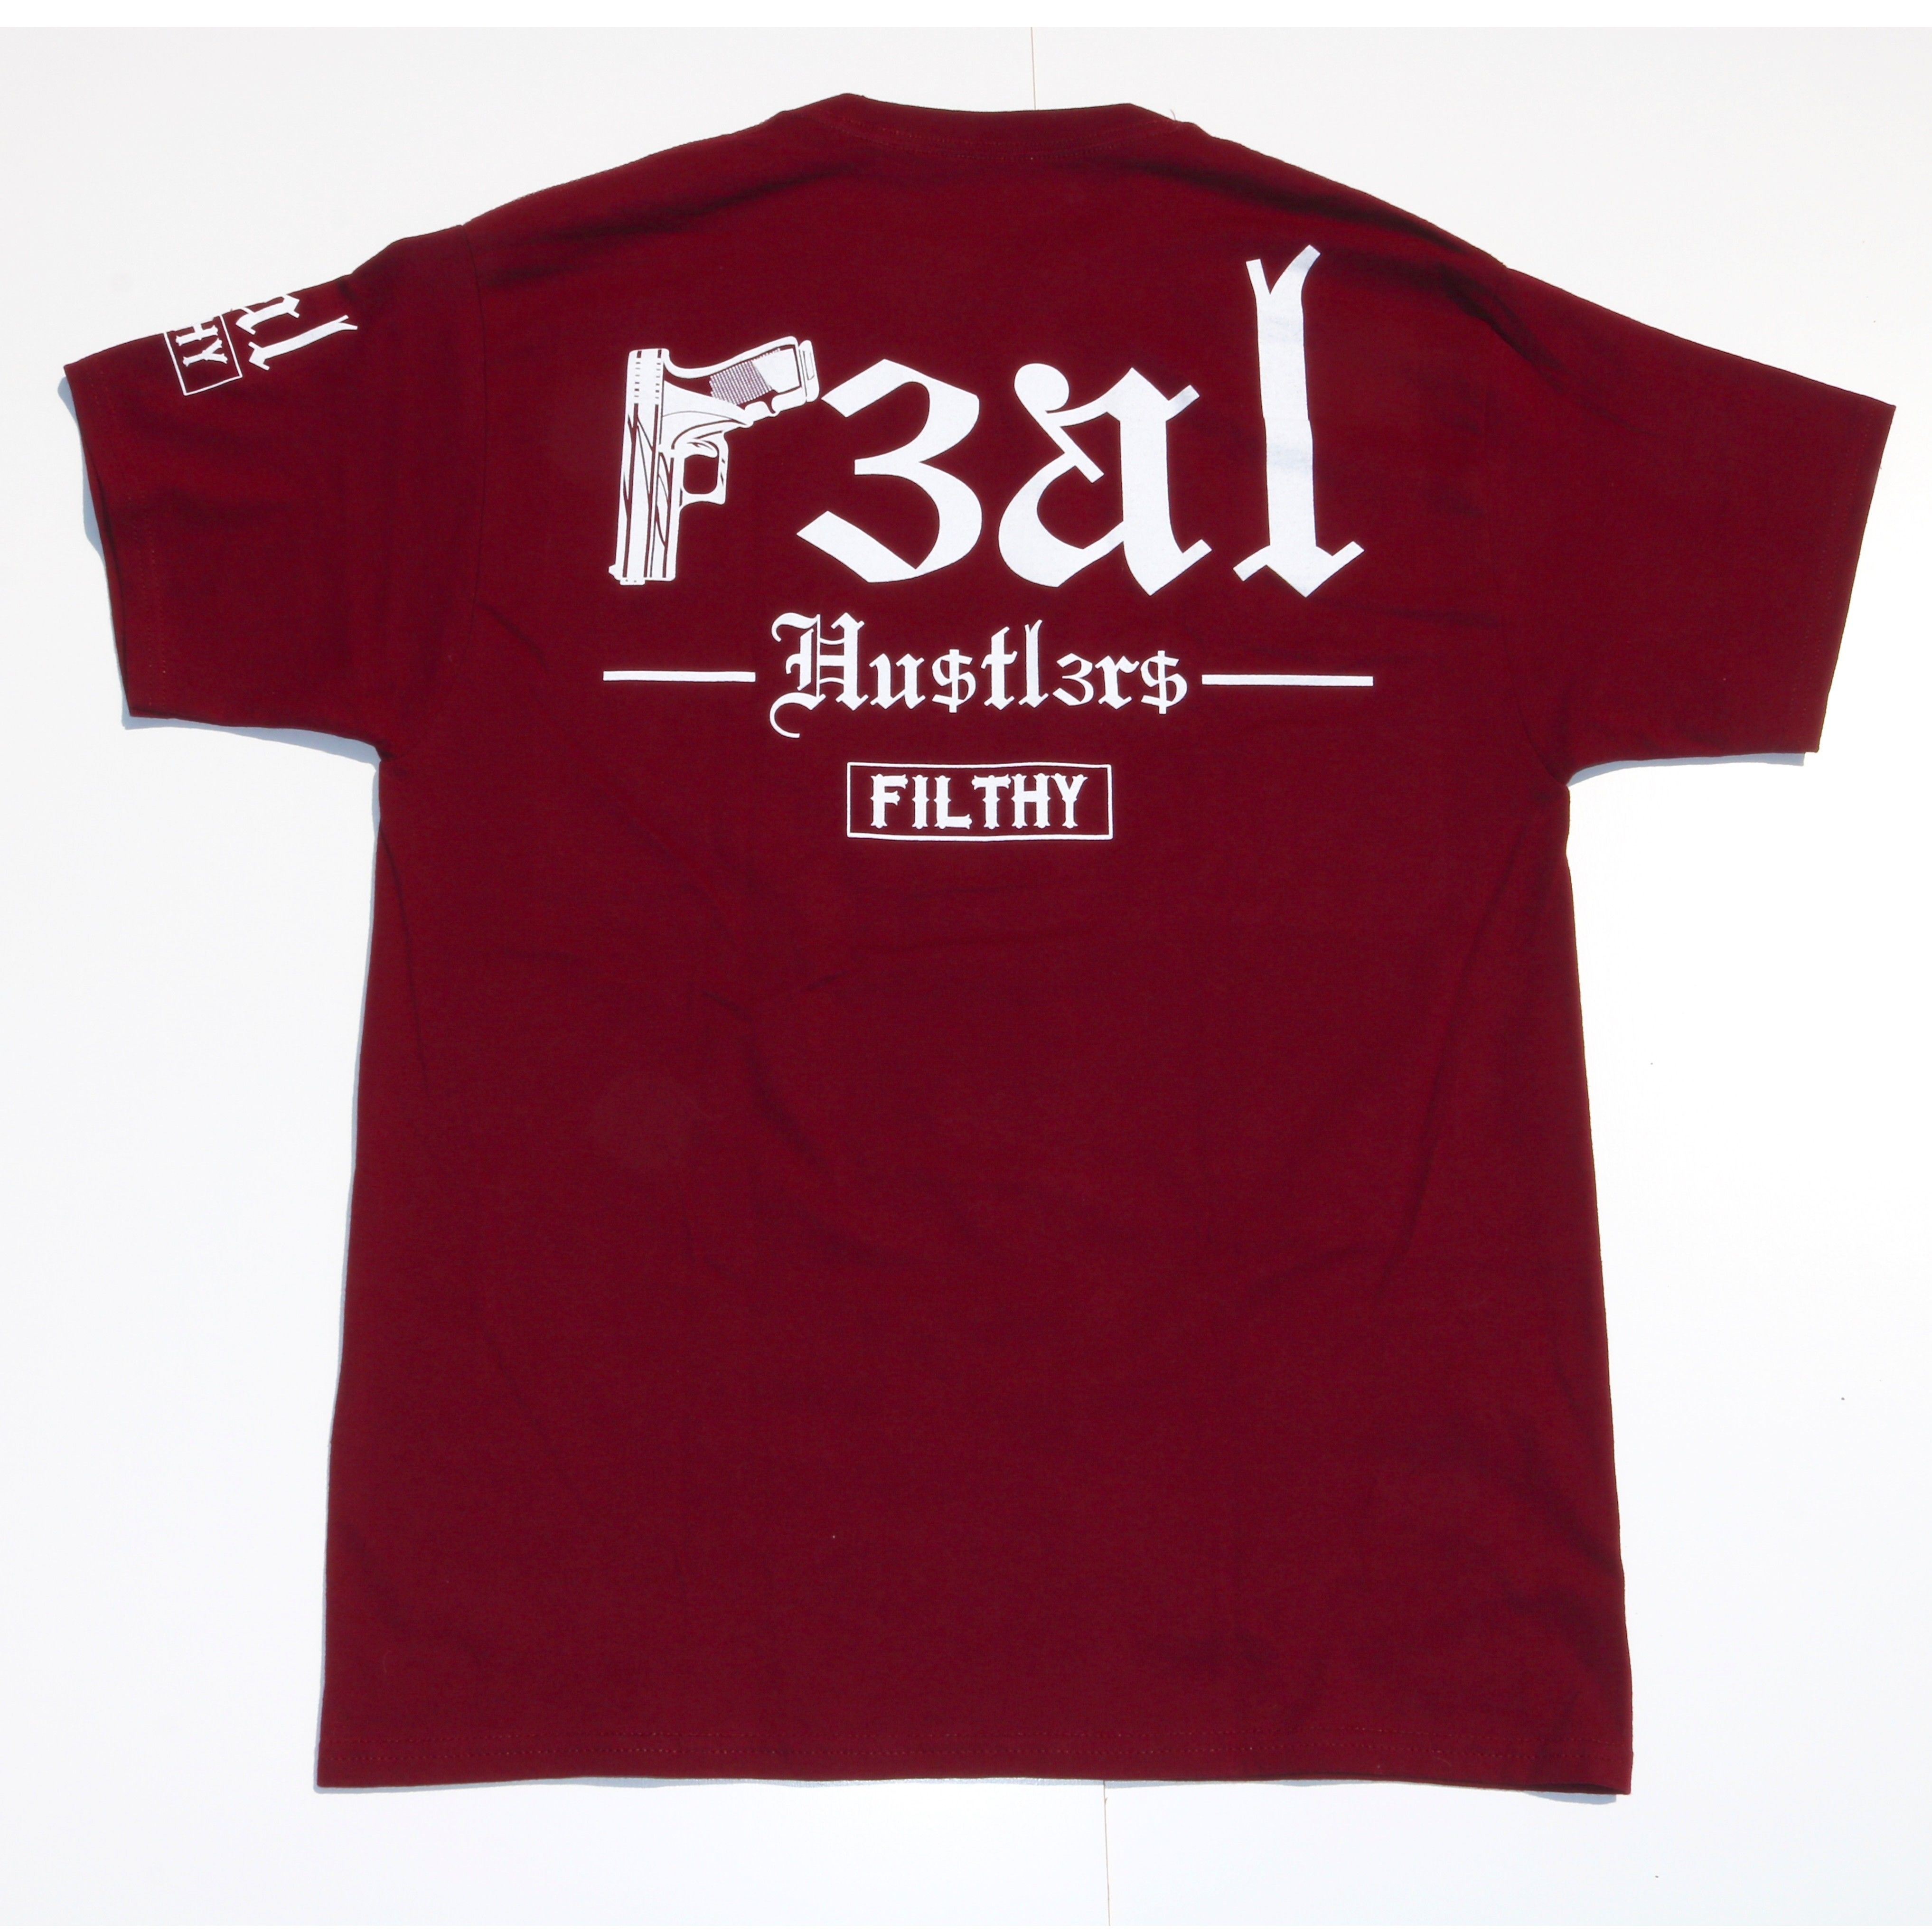 FILTHY HAWAII   Real Hustlers TSHIRTS バーガンディー/ ホワイト